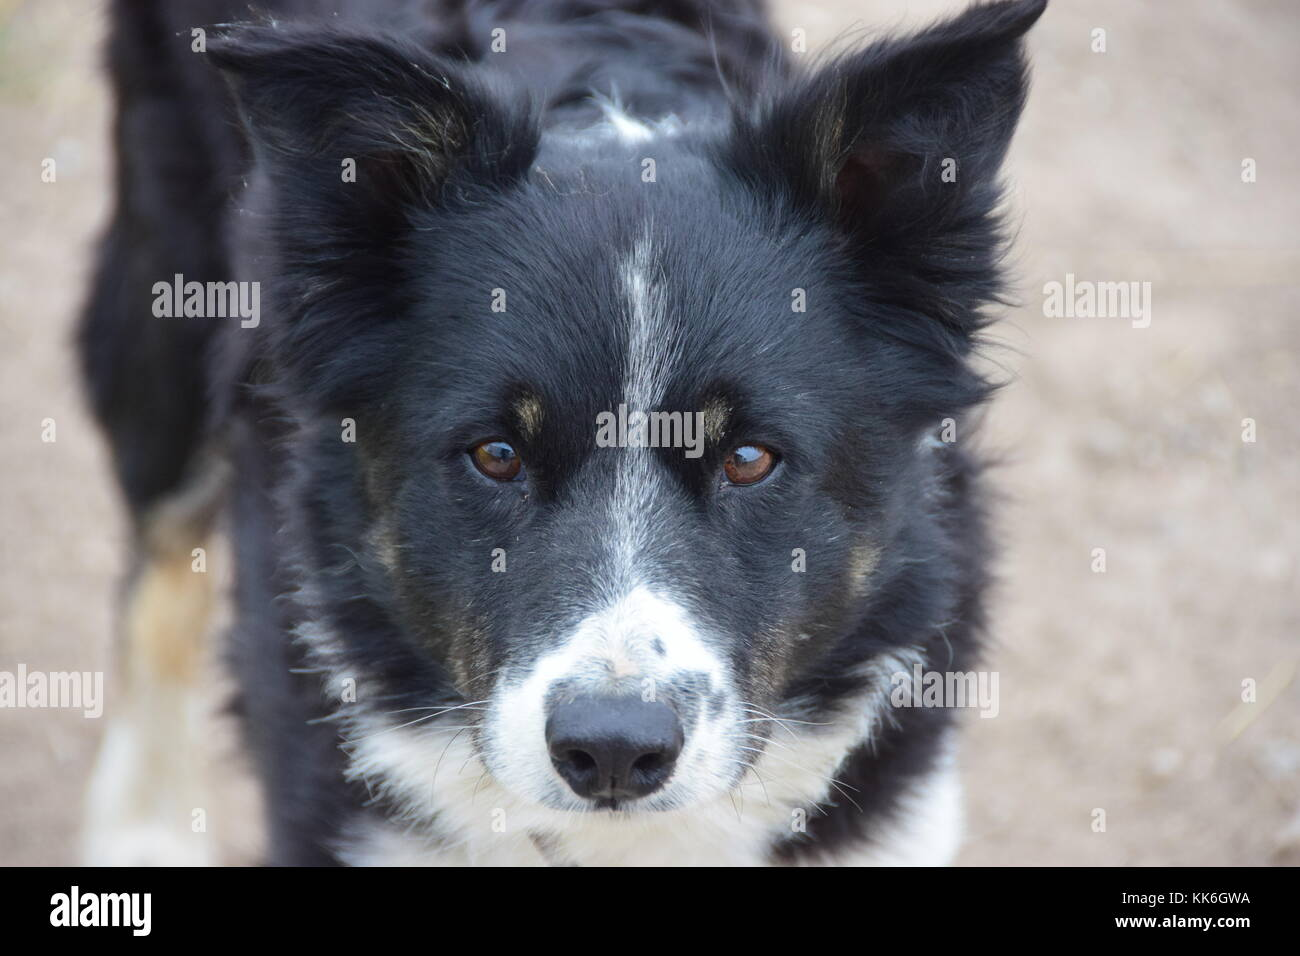 East Yorkshire working Border Collie with different facial expressions and postures - Stock Image